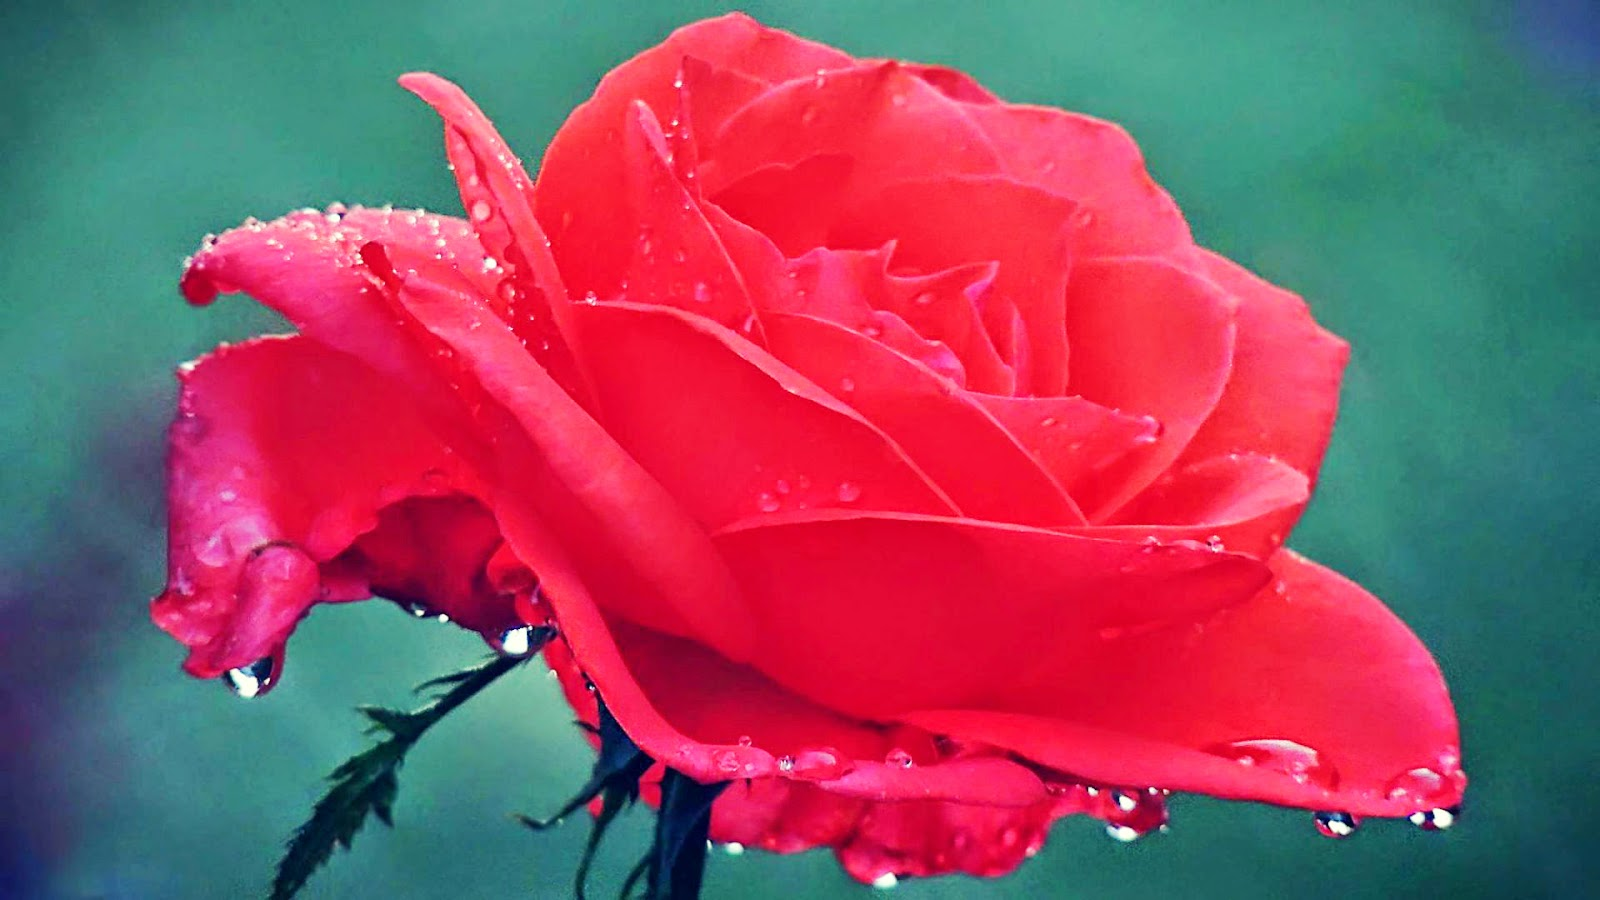 dewy-rose-wallpaper-flowers-hdlovewallpaper